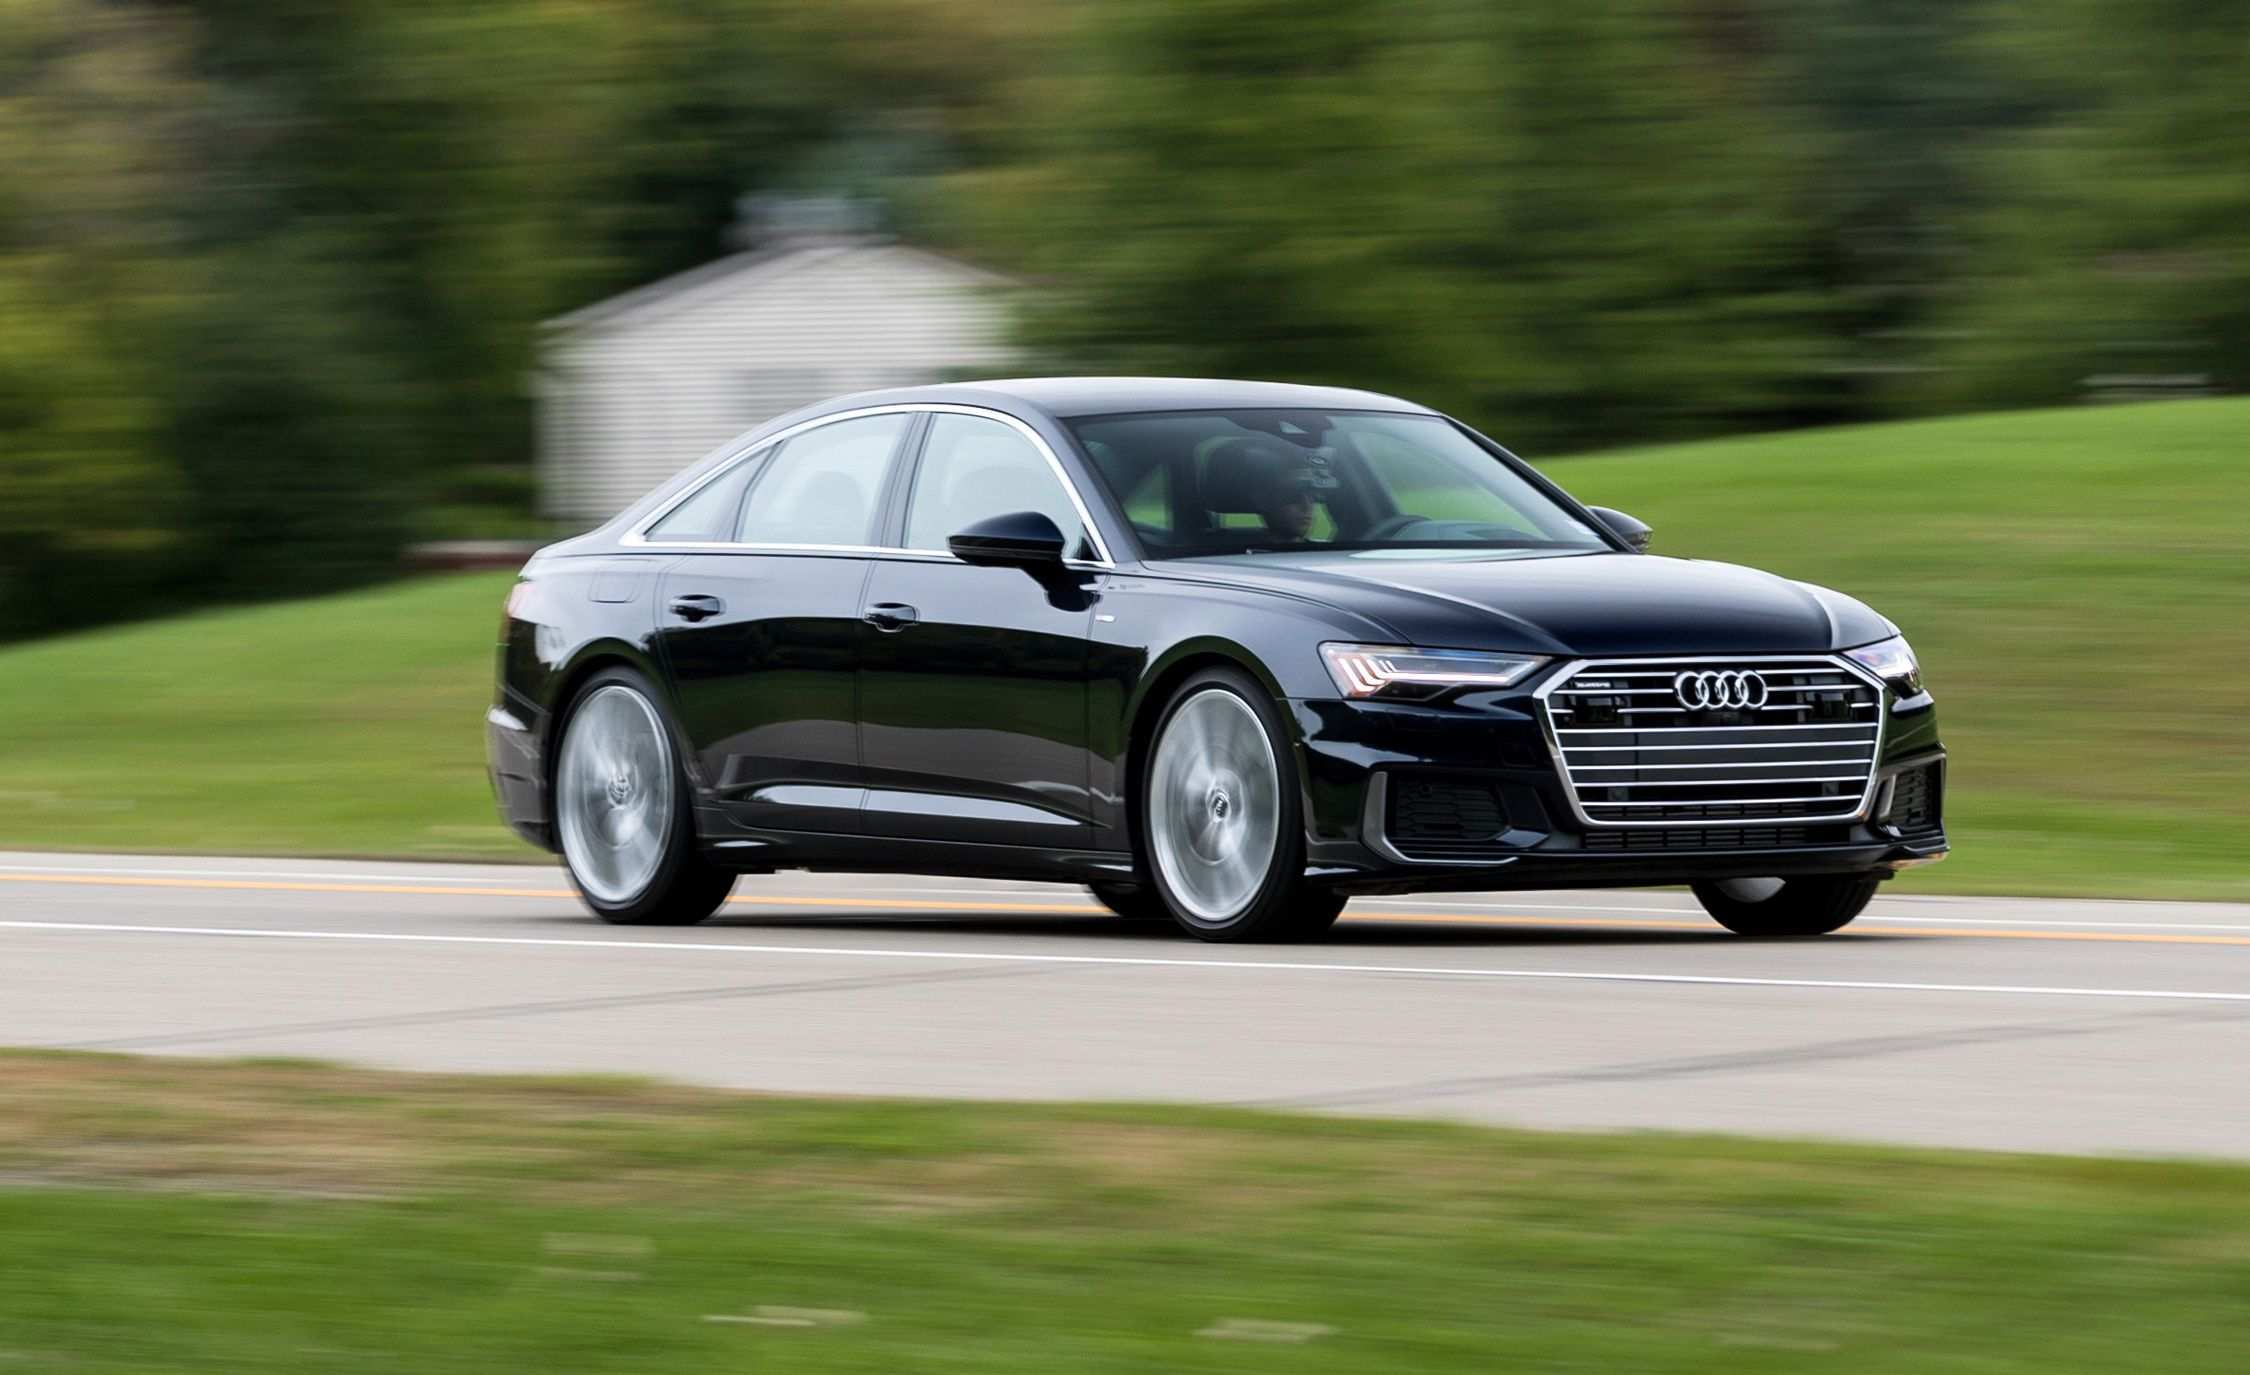 97 Best Review 2019 Audi A6 Specs Release by 2019 Audi A6 Specs